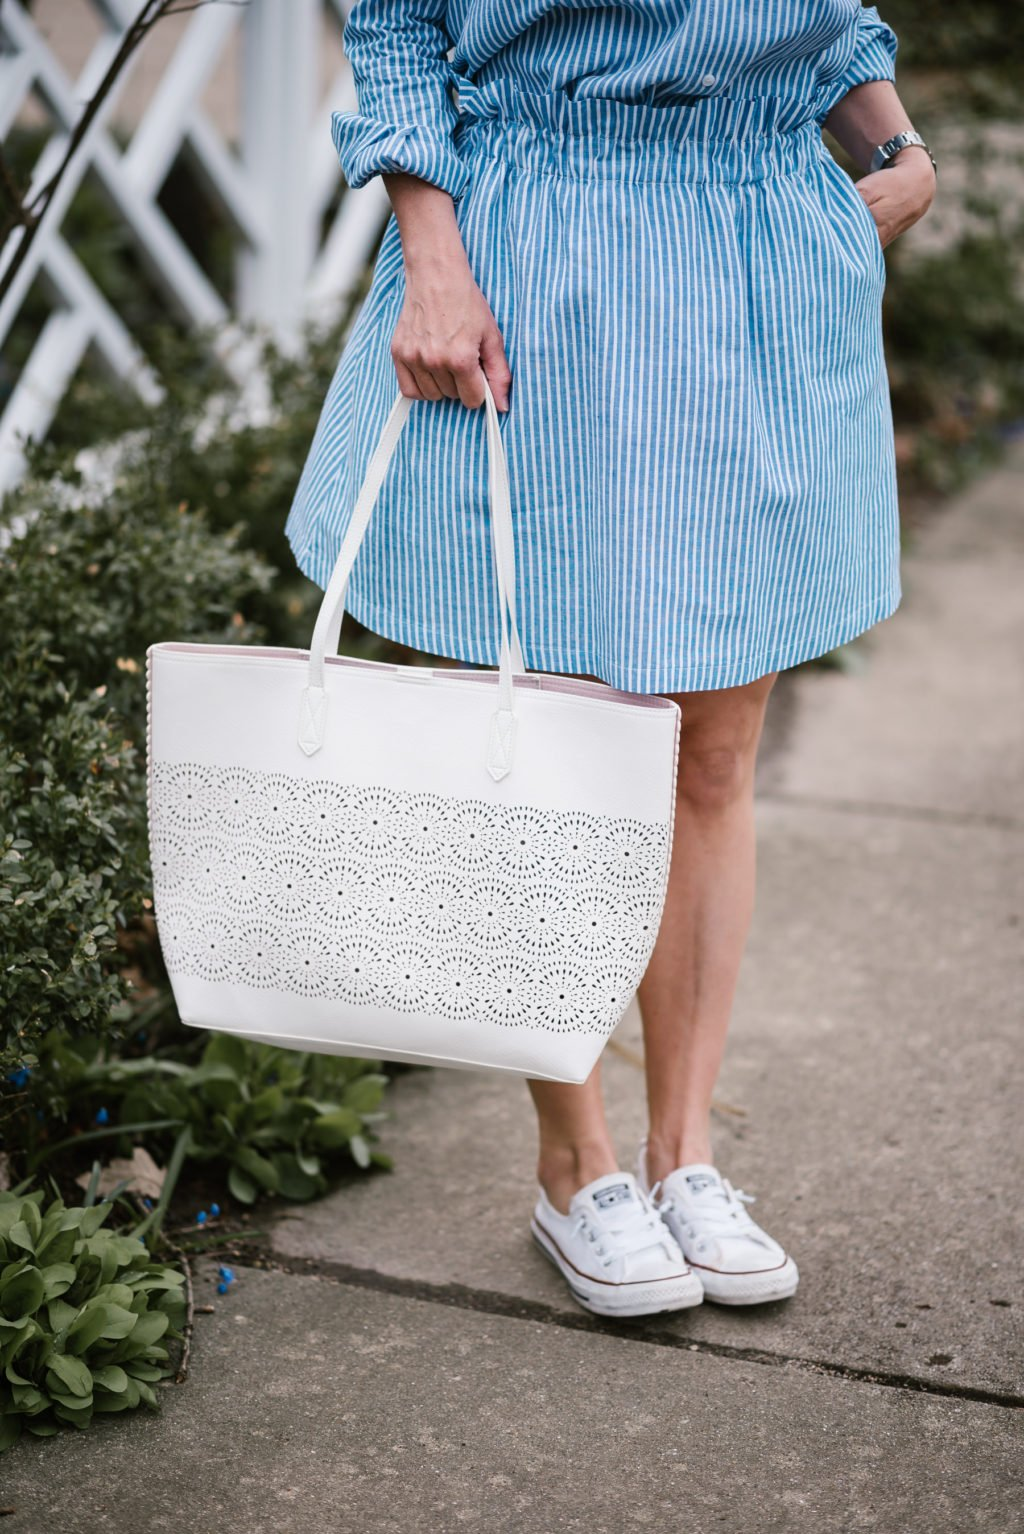 Spring style: striped two piece set, tote bag, Converse, sunglasses